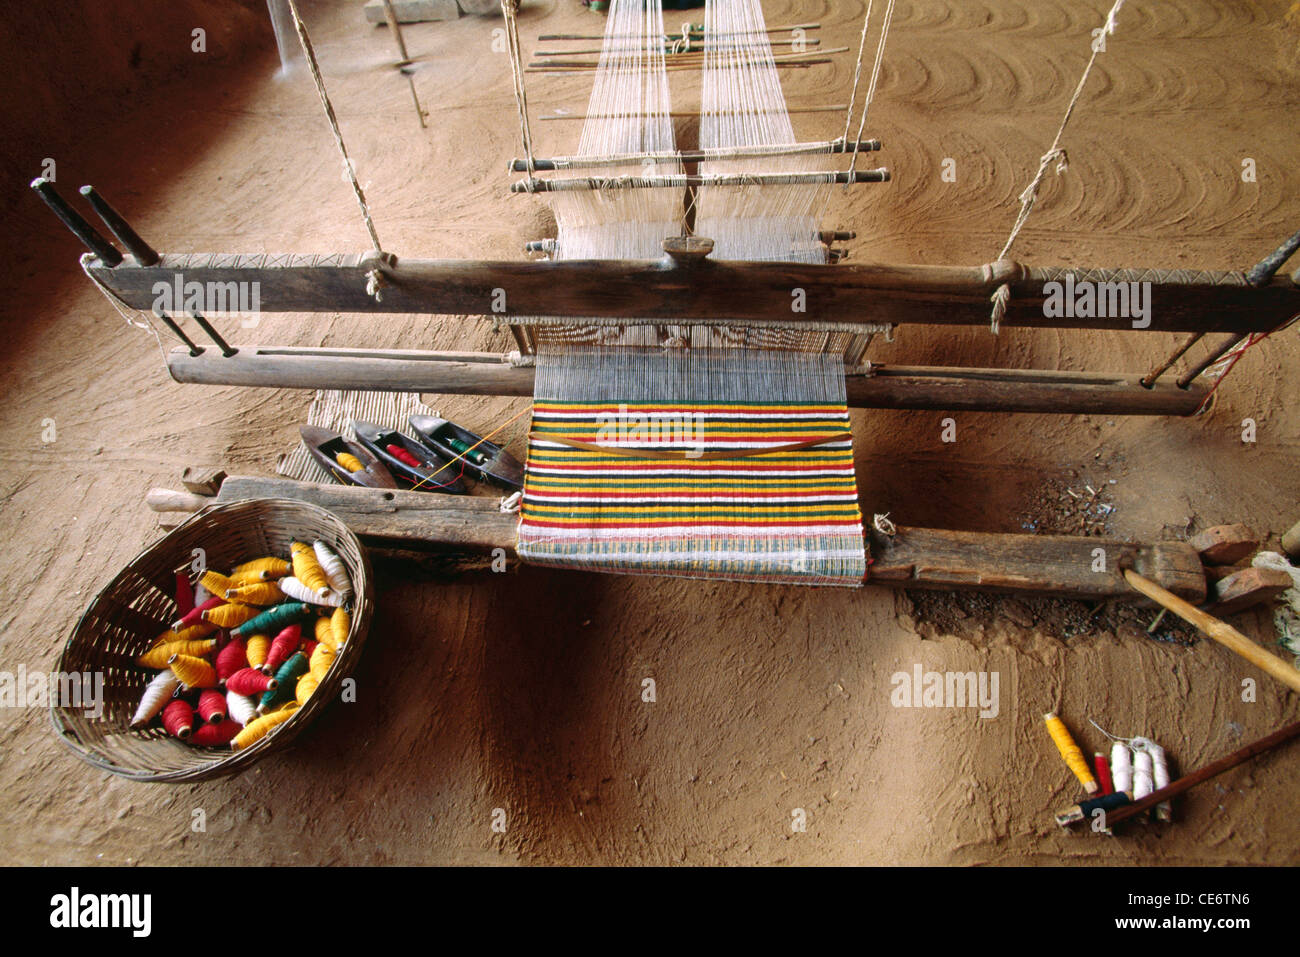 HPA 85103 : handloom machine making carpet with white warp thread and colourful weft yarn india